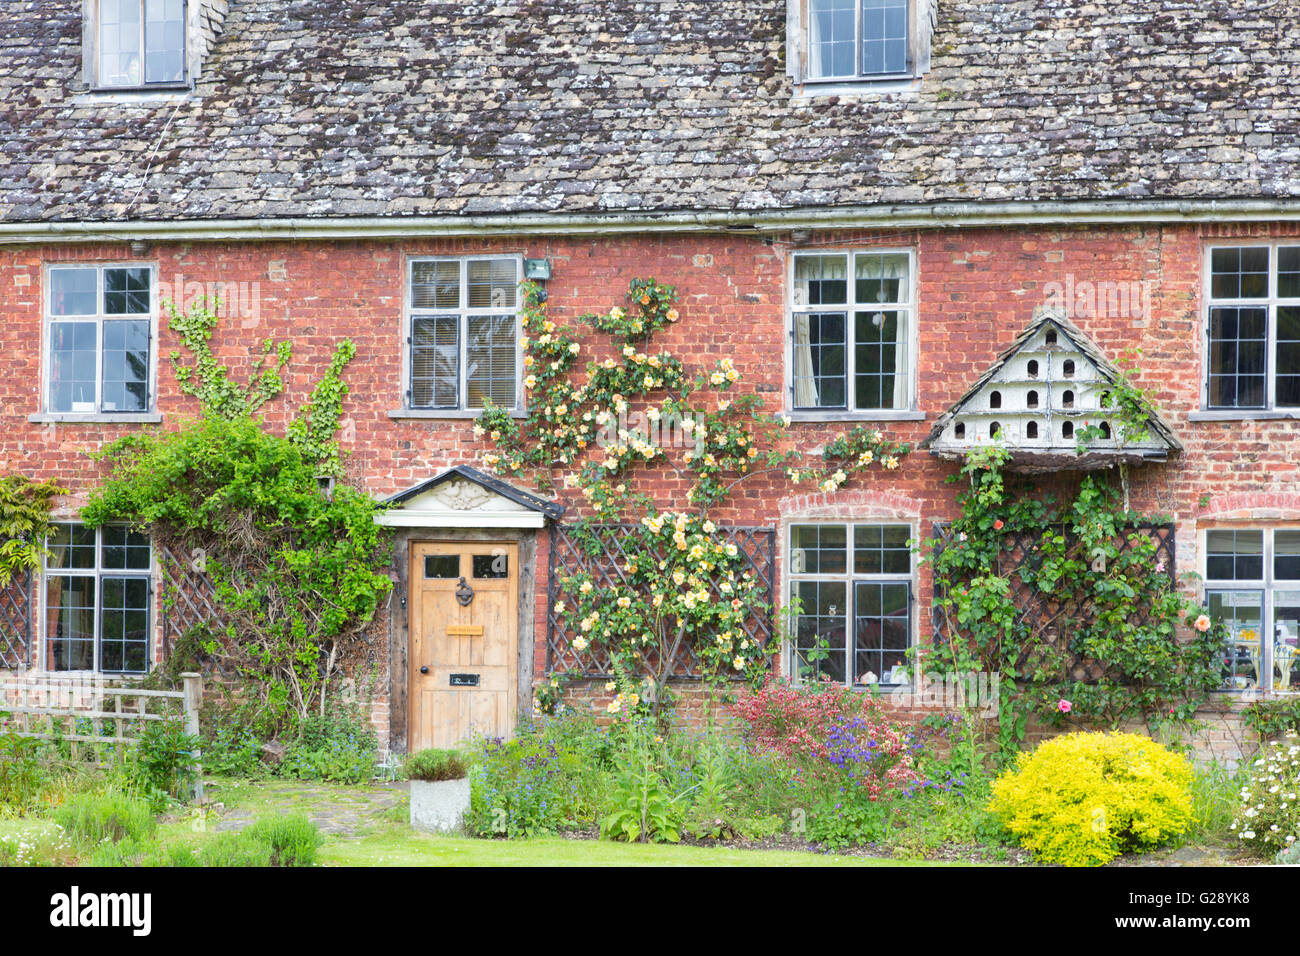 A picturesque country cottage, Gloucestershire, England, UK - Stock Image